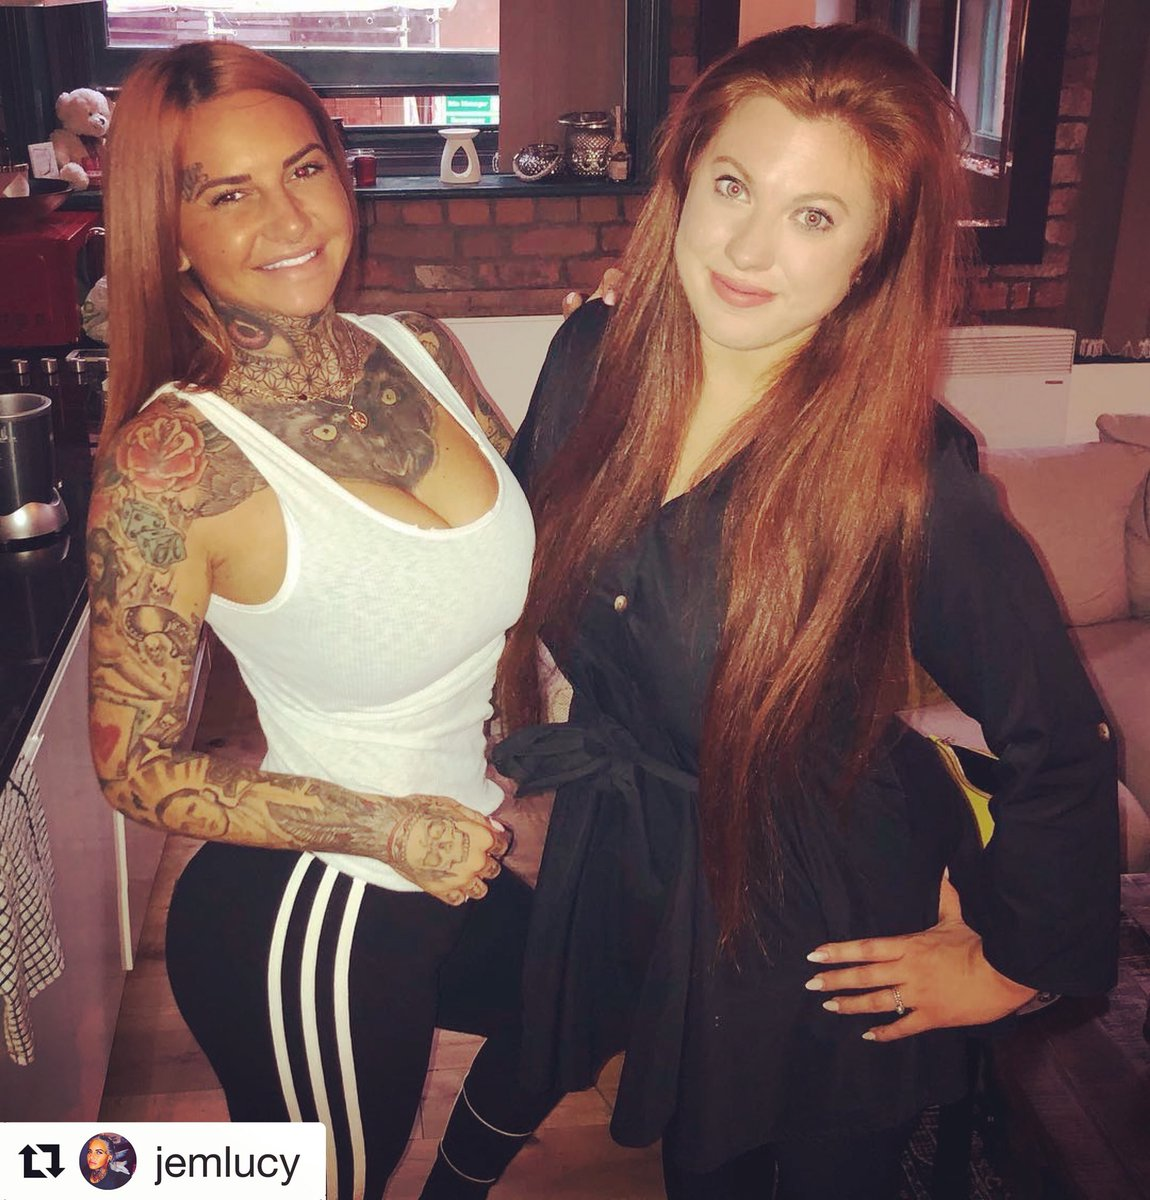 RT @MarthaLassey: Repost ???? Another great session with @jem_lucy ... follow her journey guys!!  #lifecoach https://t.co/YX8raUDzpa